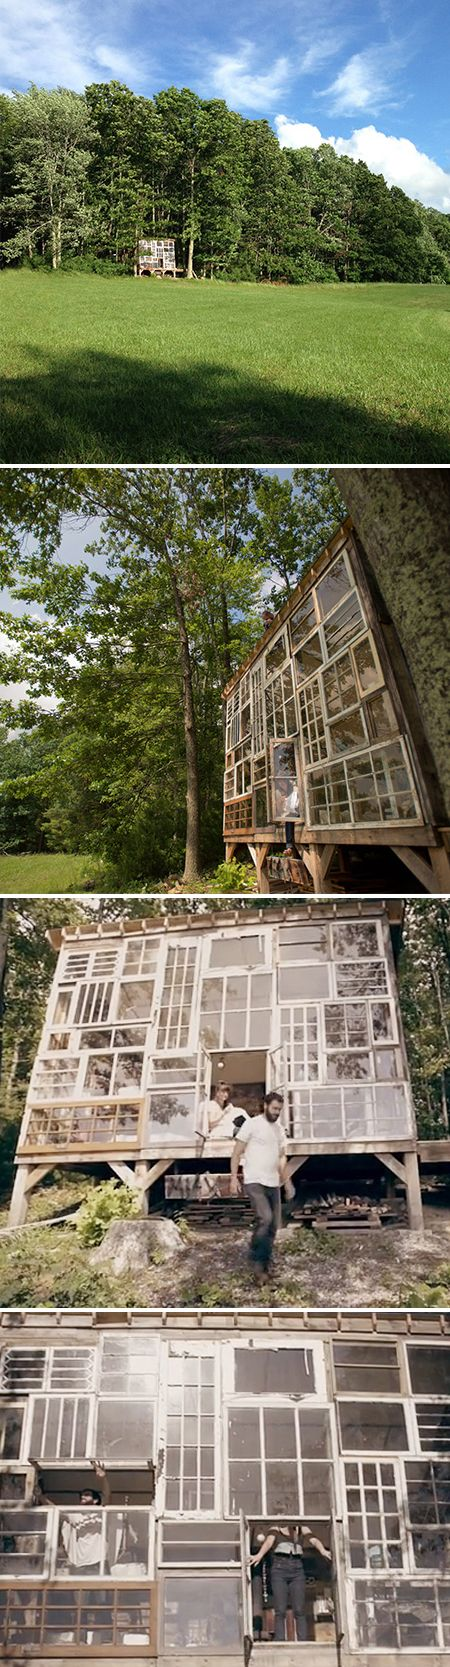 a cabin made of salvaged windows ♥